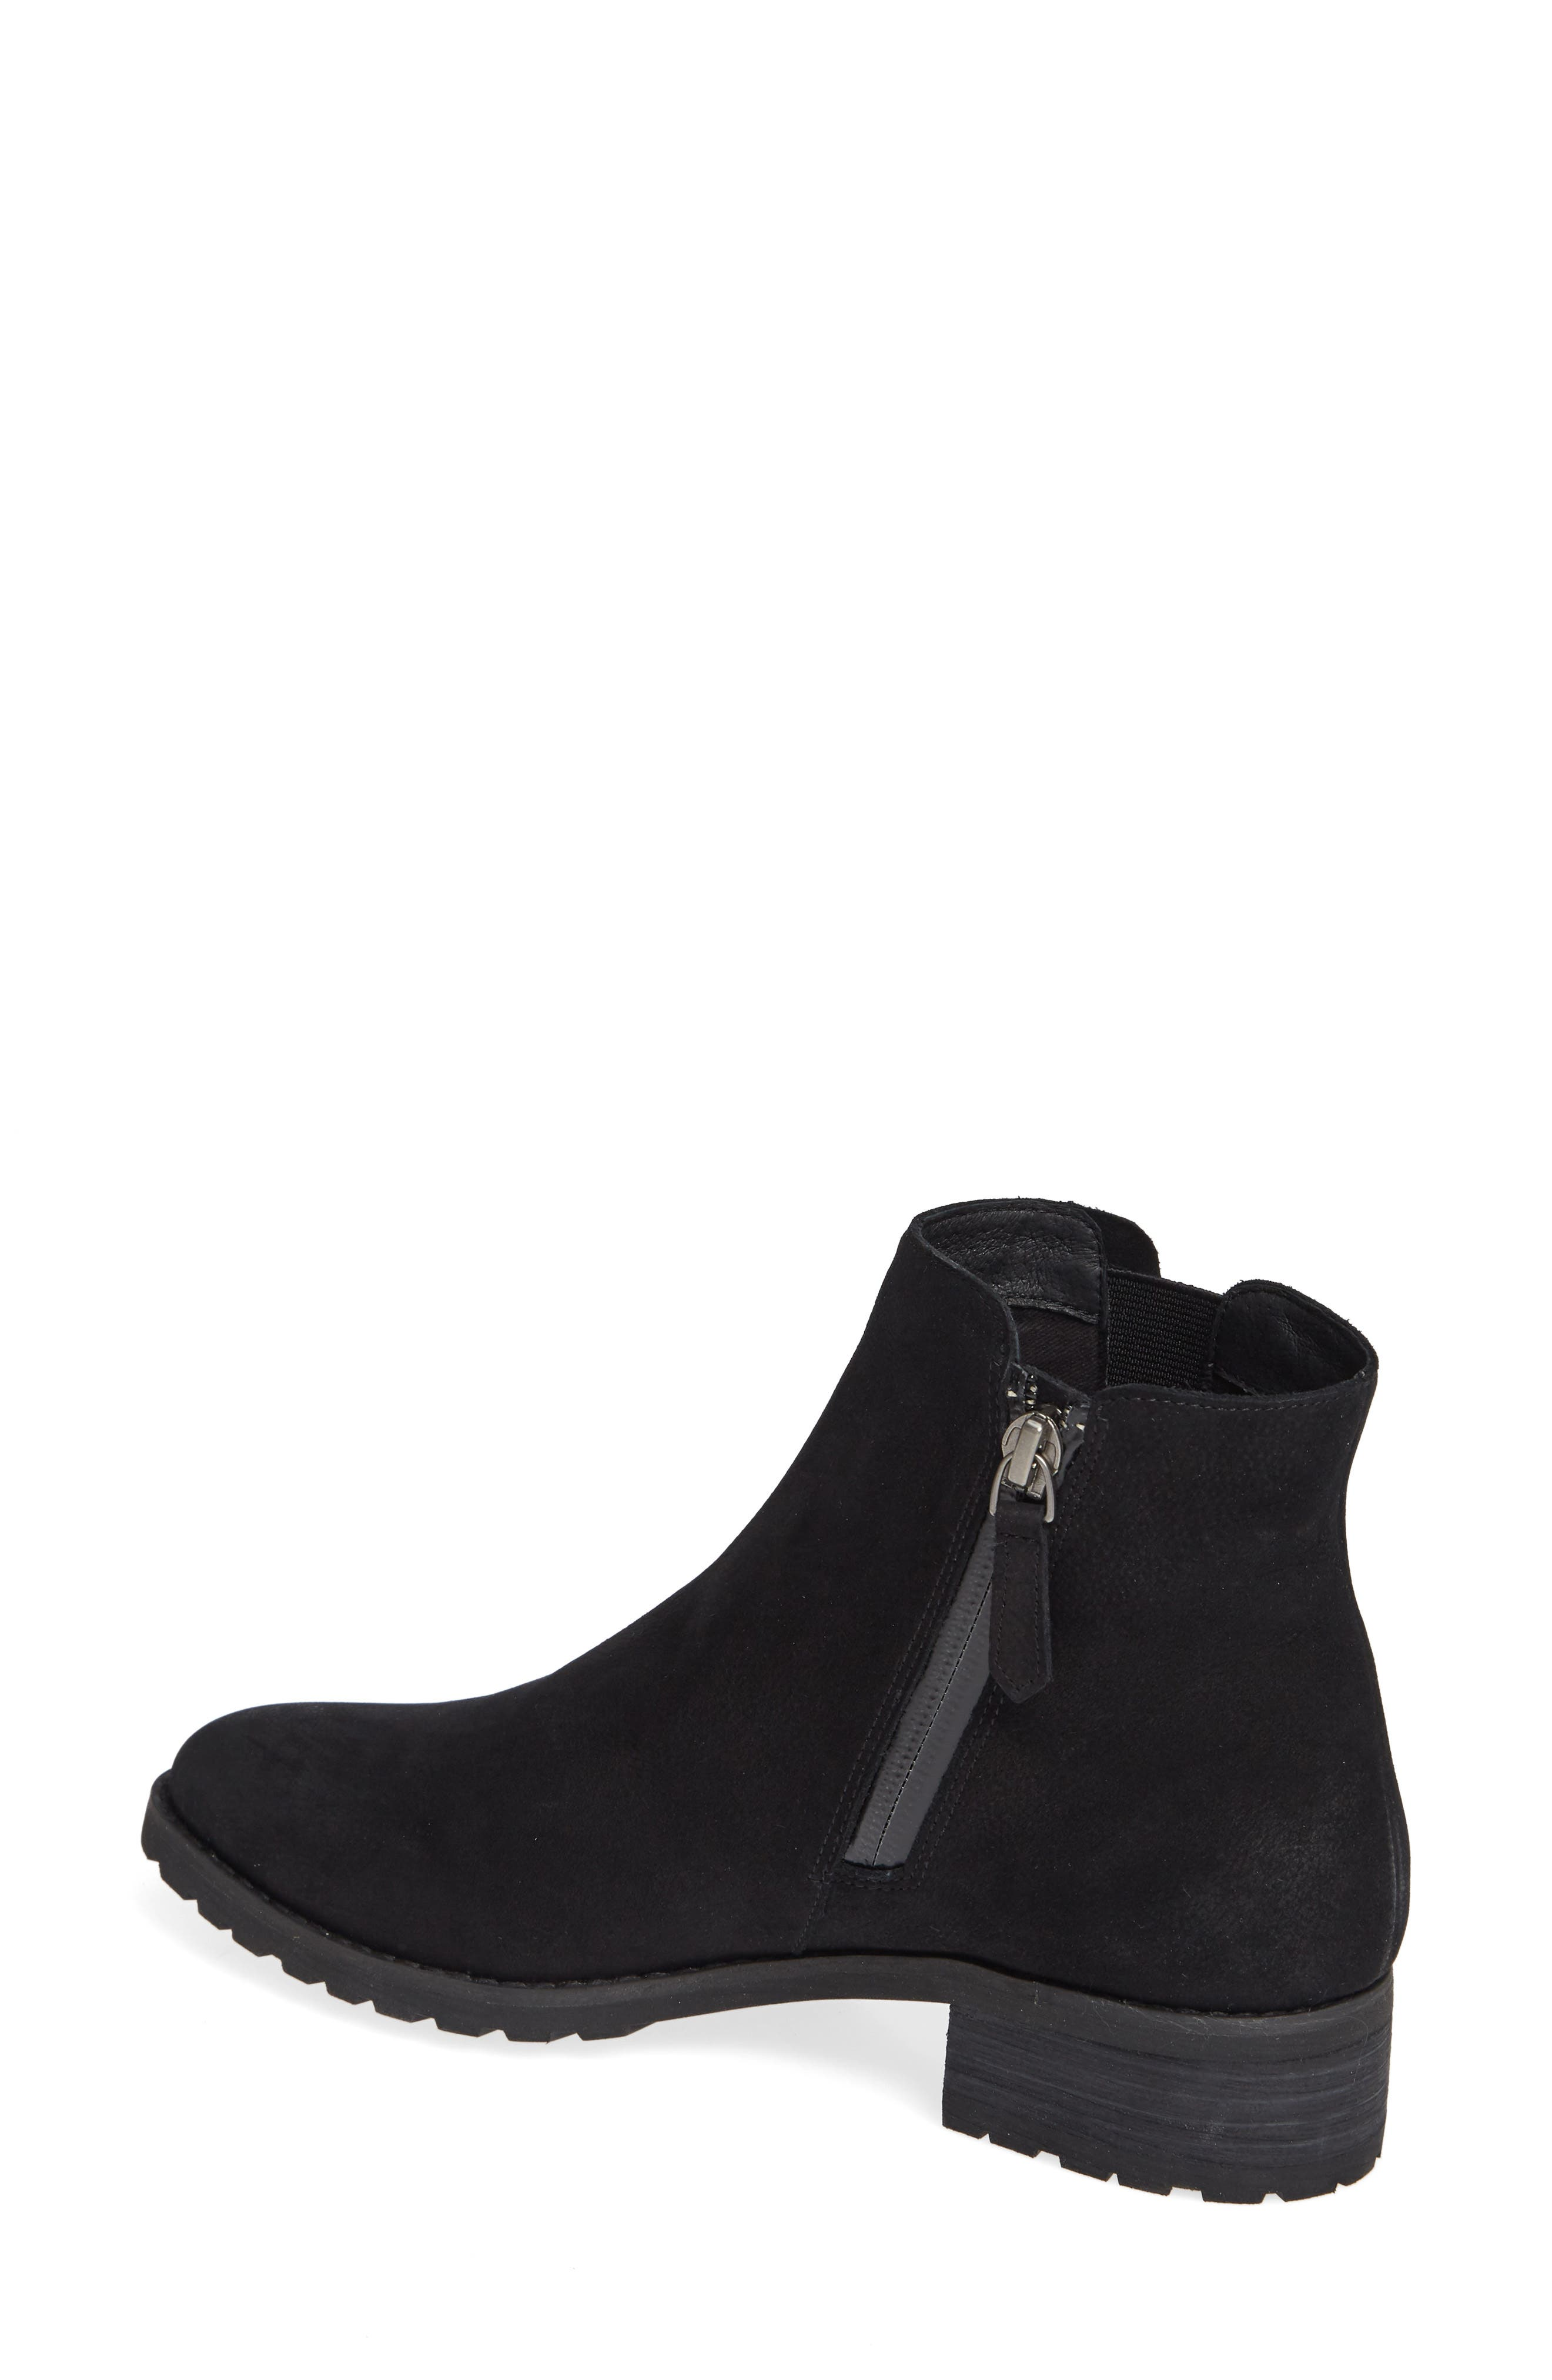 Ollie Water Resistant Bootie,                             Alternate thumbnail 2, color,                             BLACK OILED NUBUCK